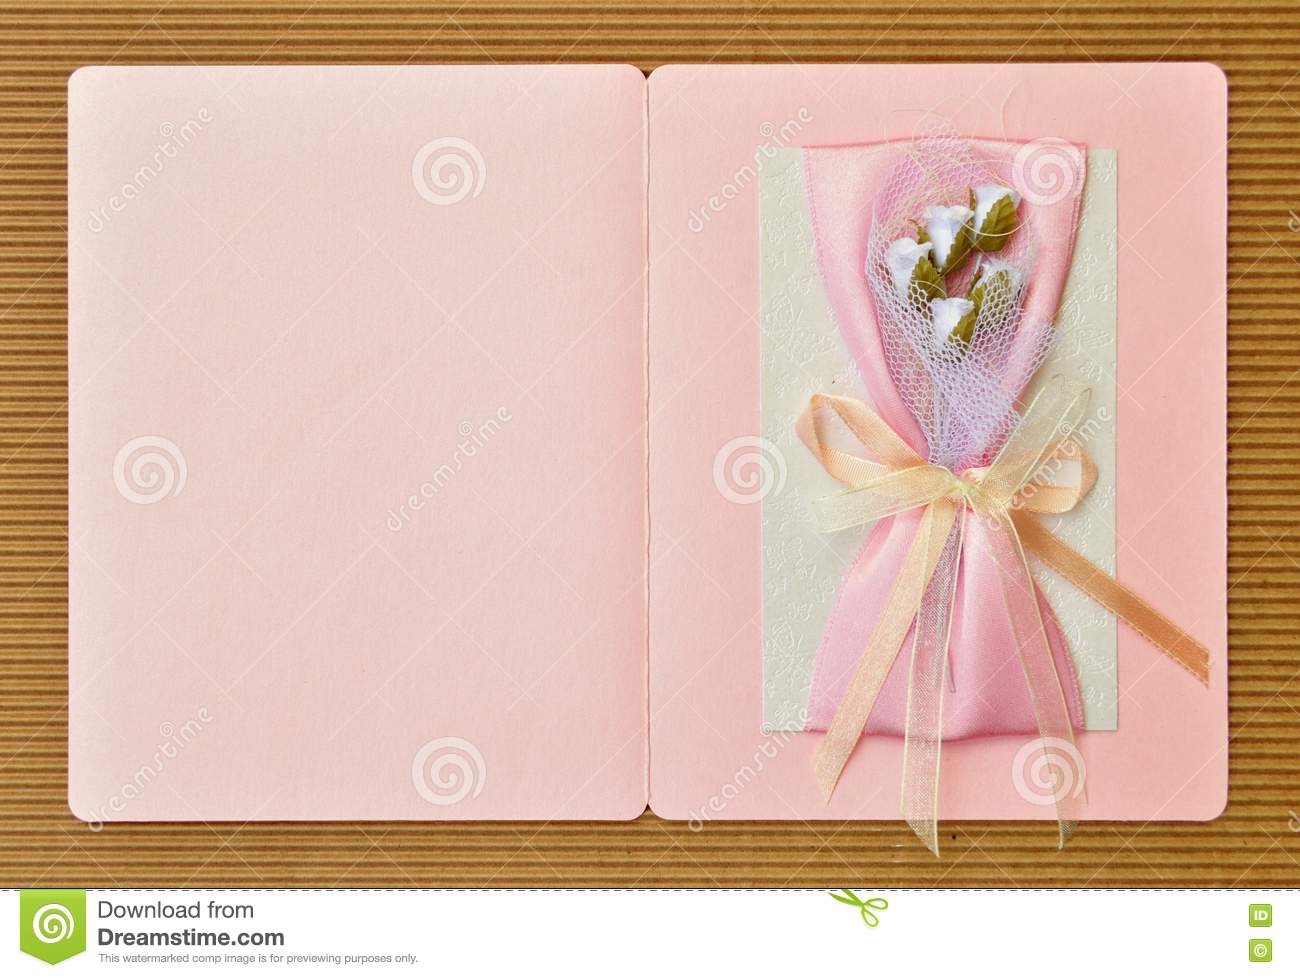 Homemade Invitation Cards as nice invitations design